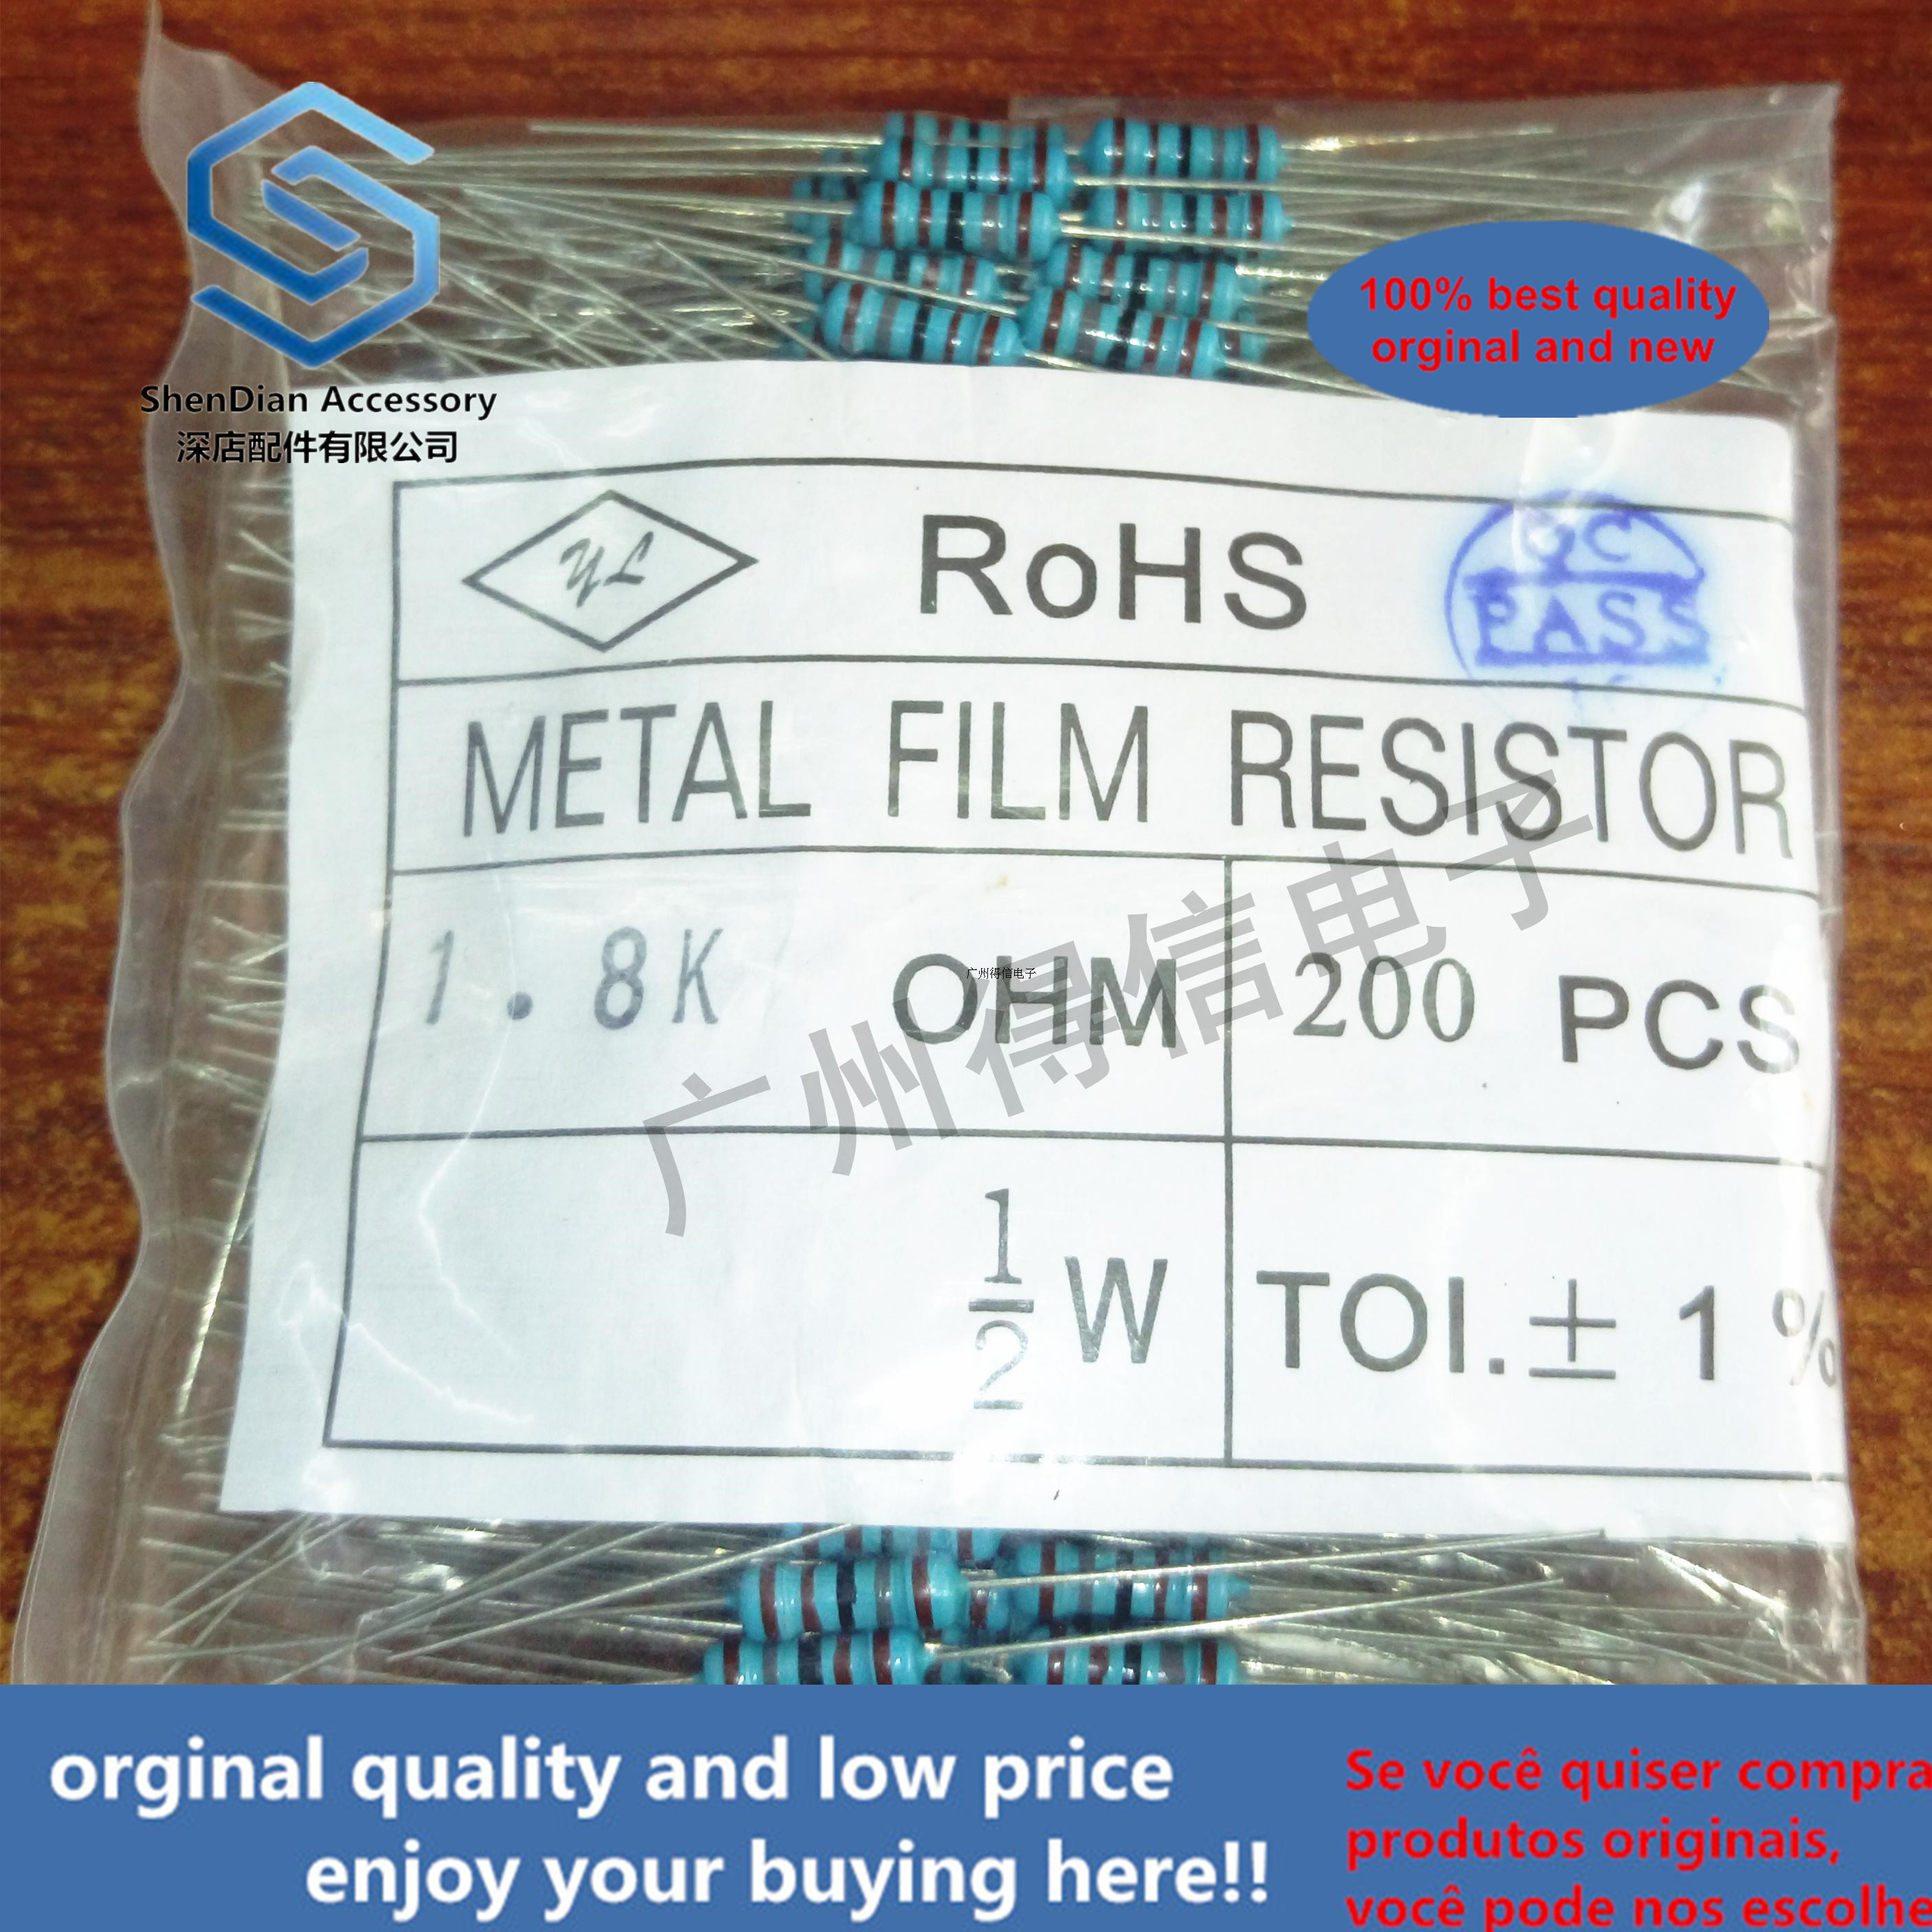 200pcs 1 / 2W 9.1K 9100 Euro 1% Brand New Metal Film Iron Feet Resistor Bag 200 Pcs Per Pack